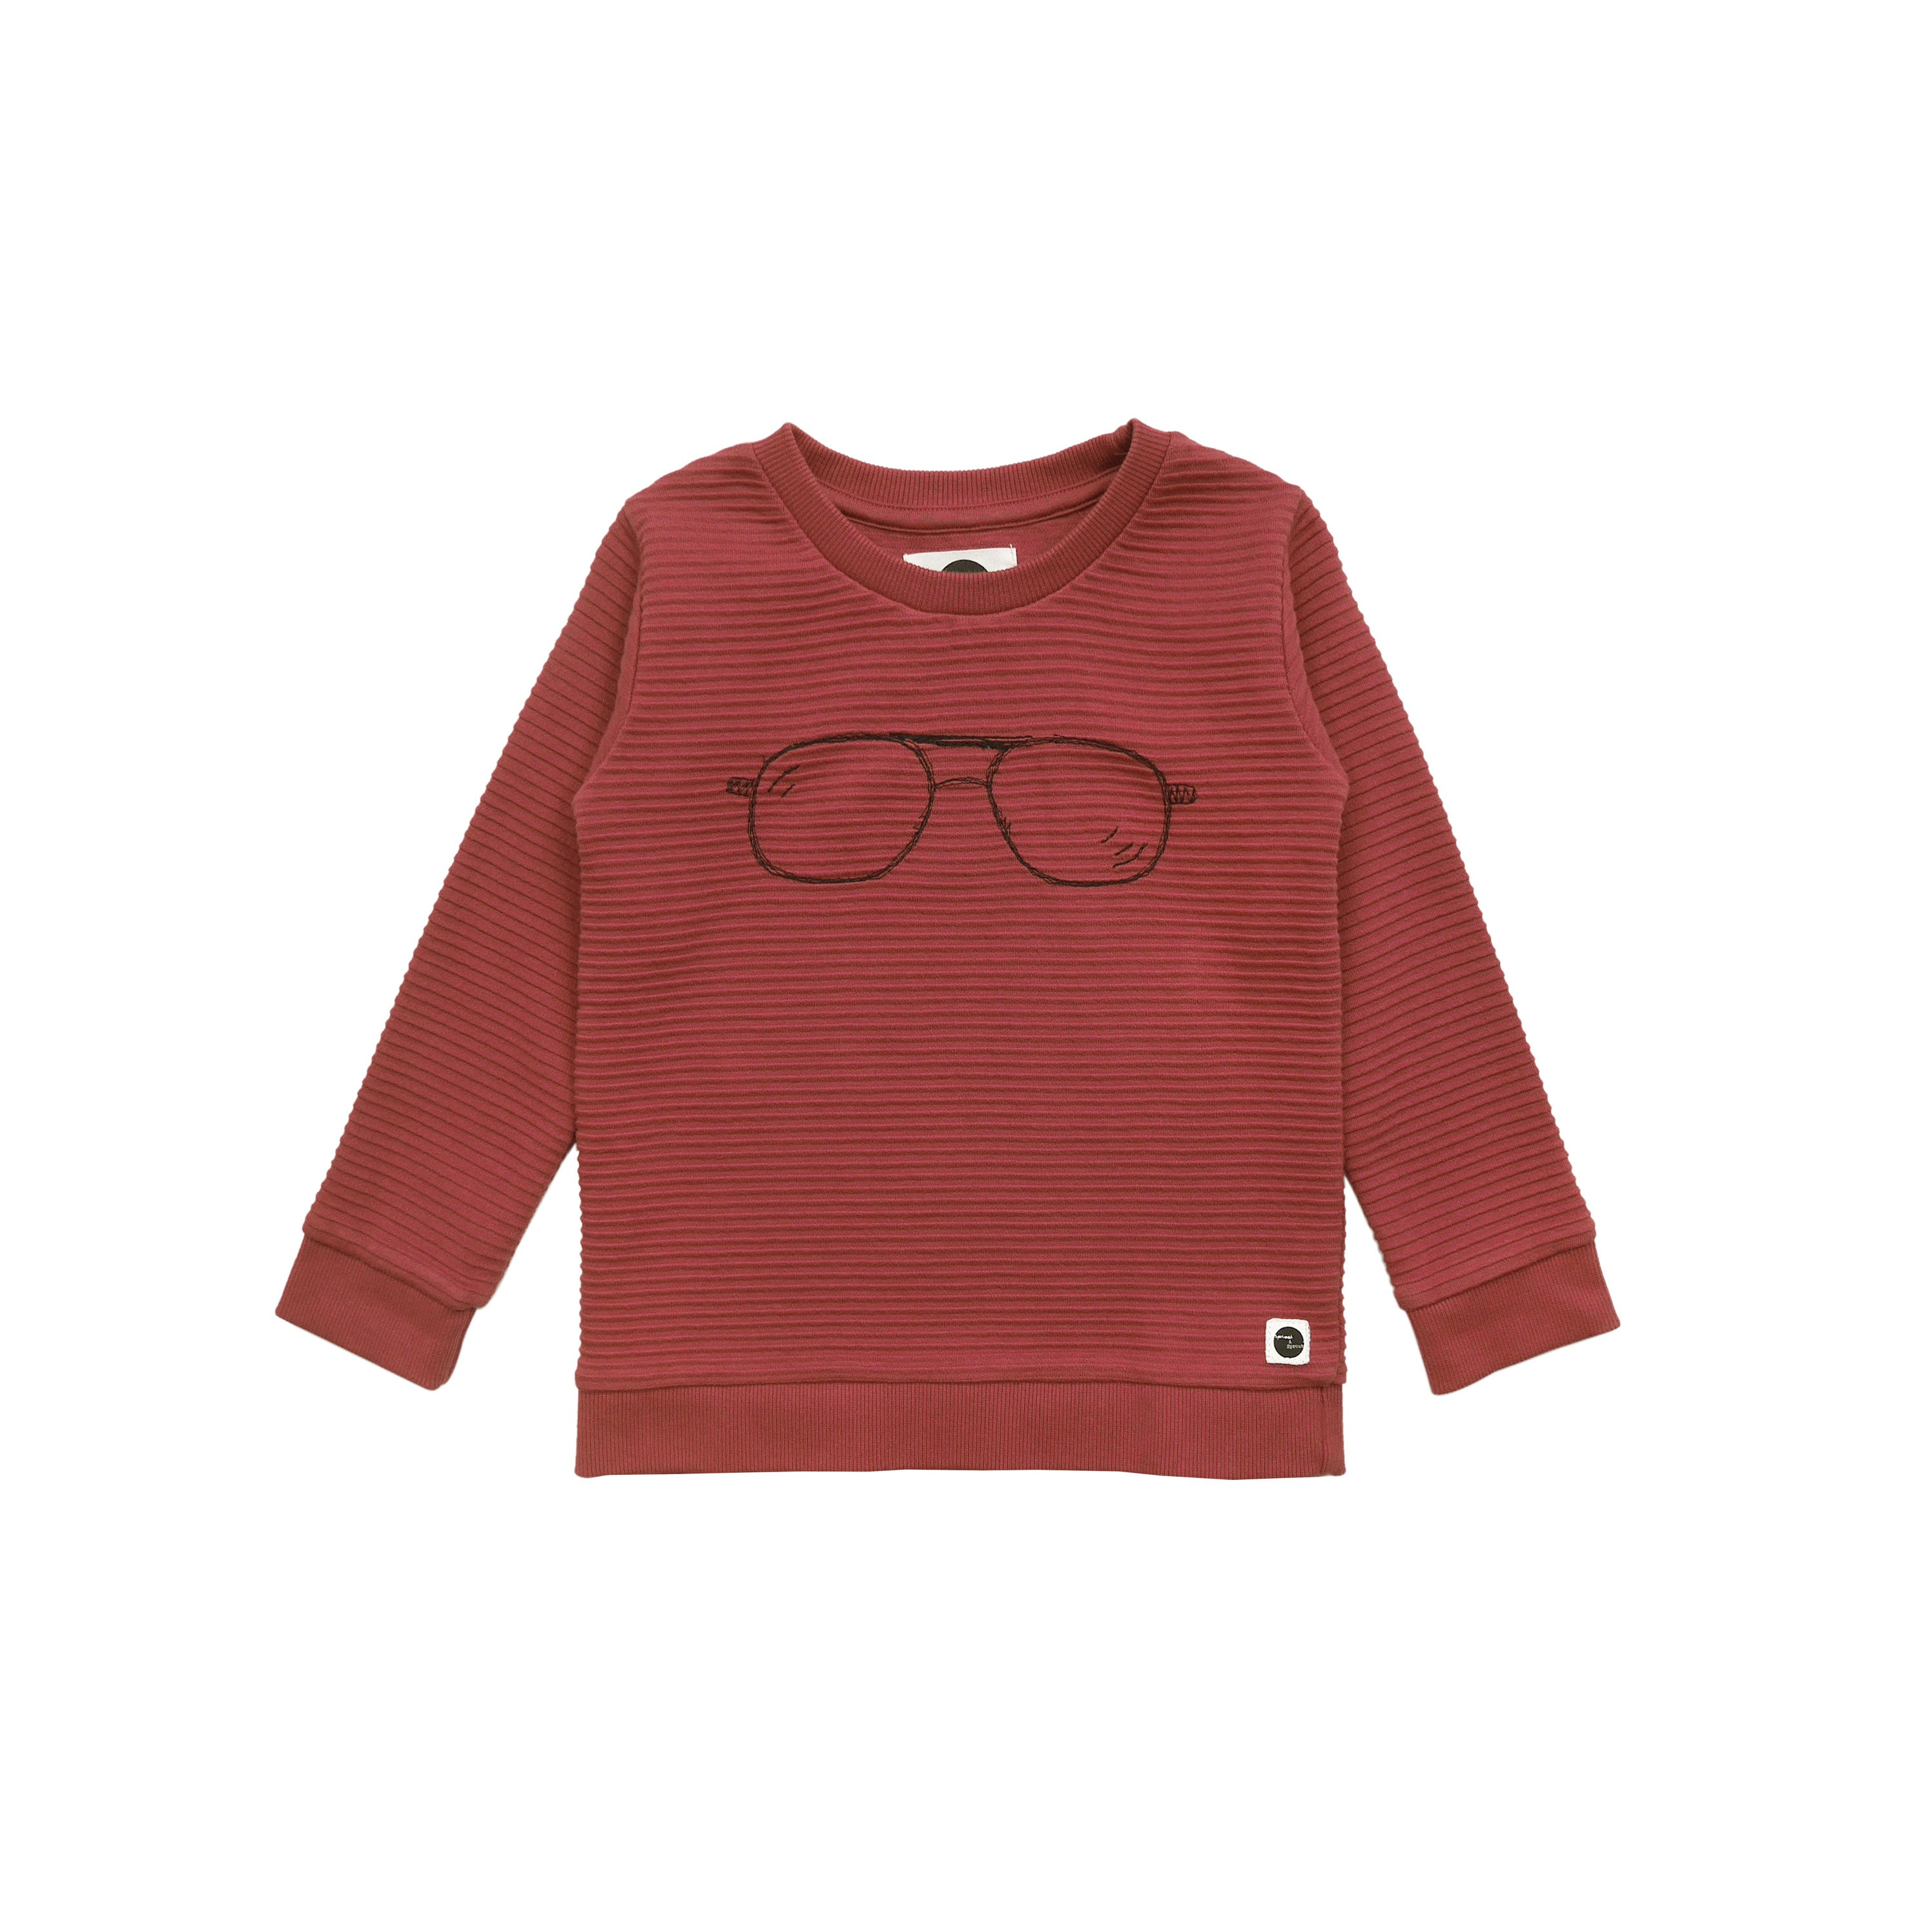 9cc689b4cc Sproet and Sprout Glasses Sweater